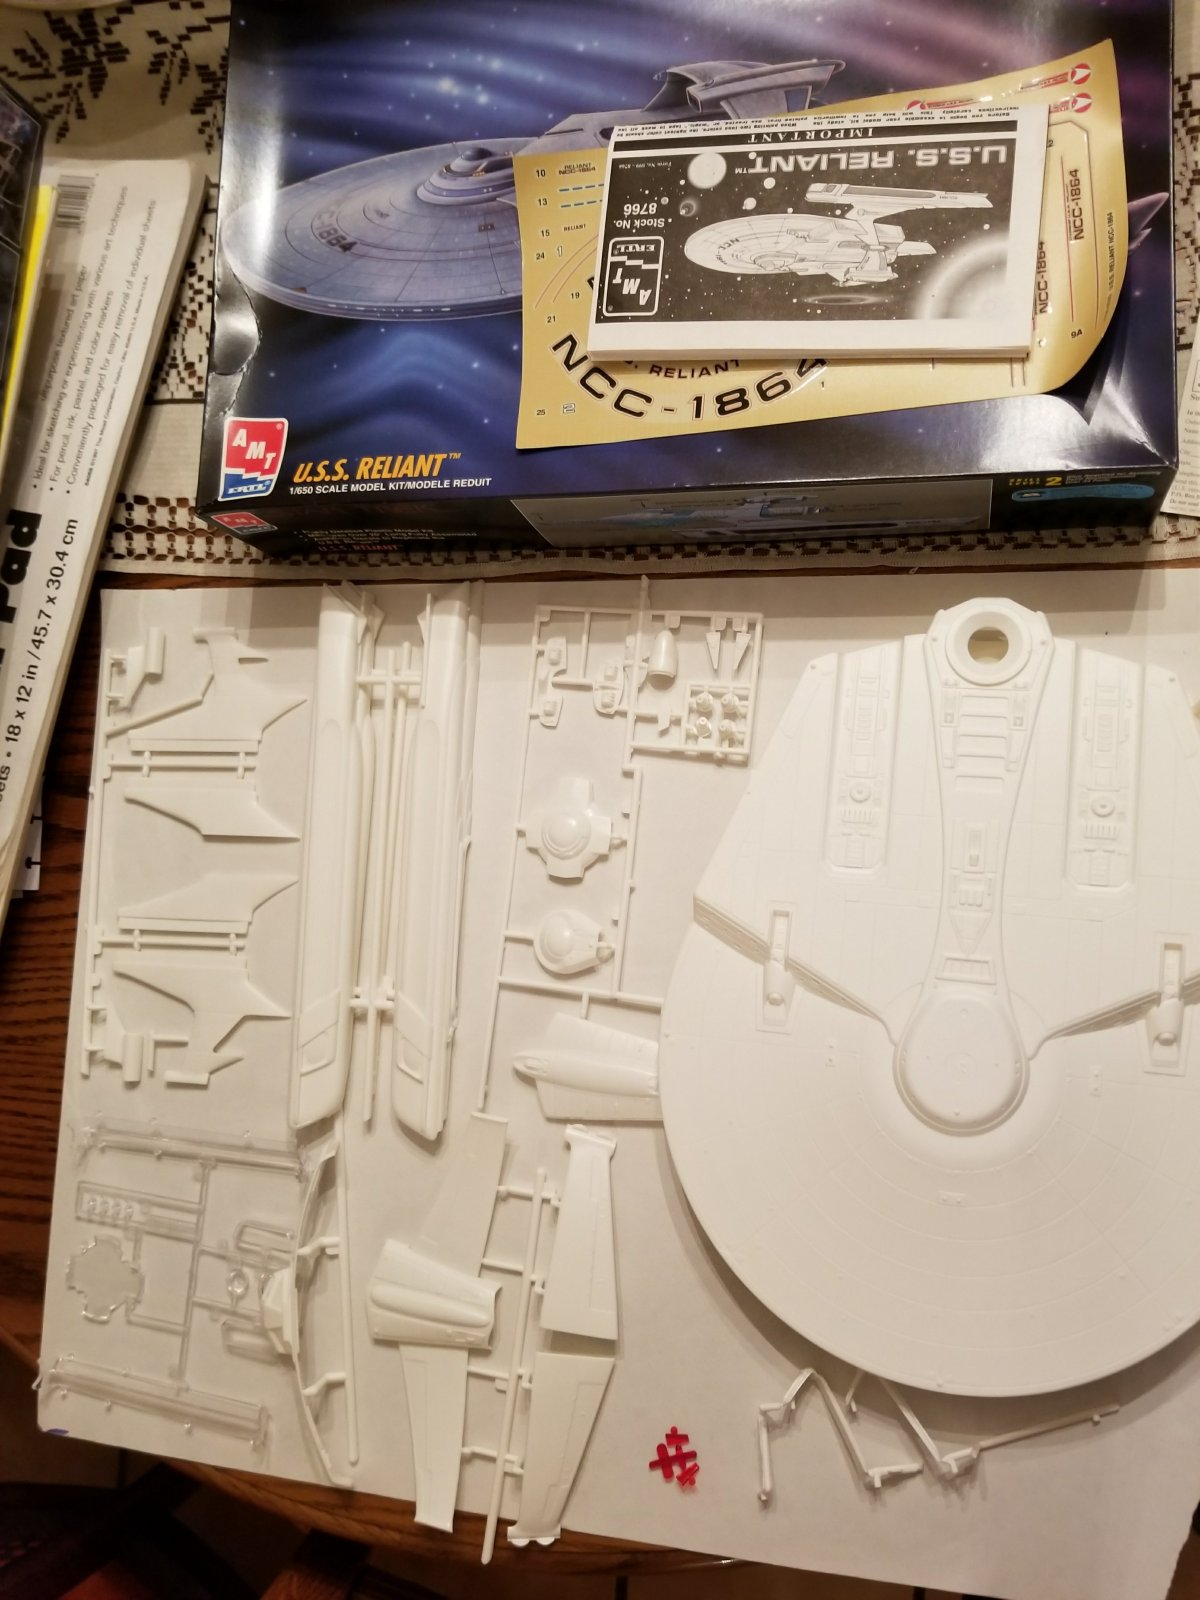 Dispatches from the World of ADHD: Model Building, The Chubby Kid, and the U.S.S. Reliant.